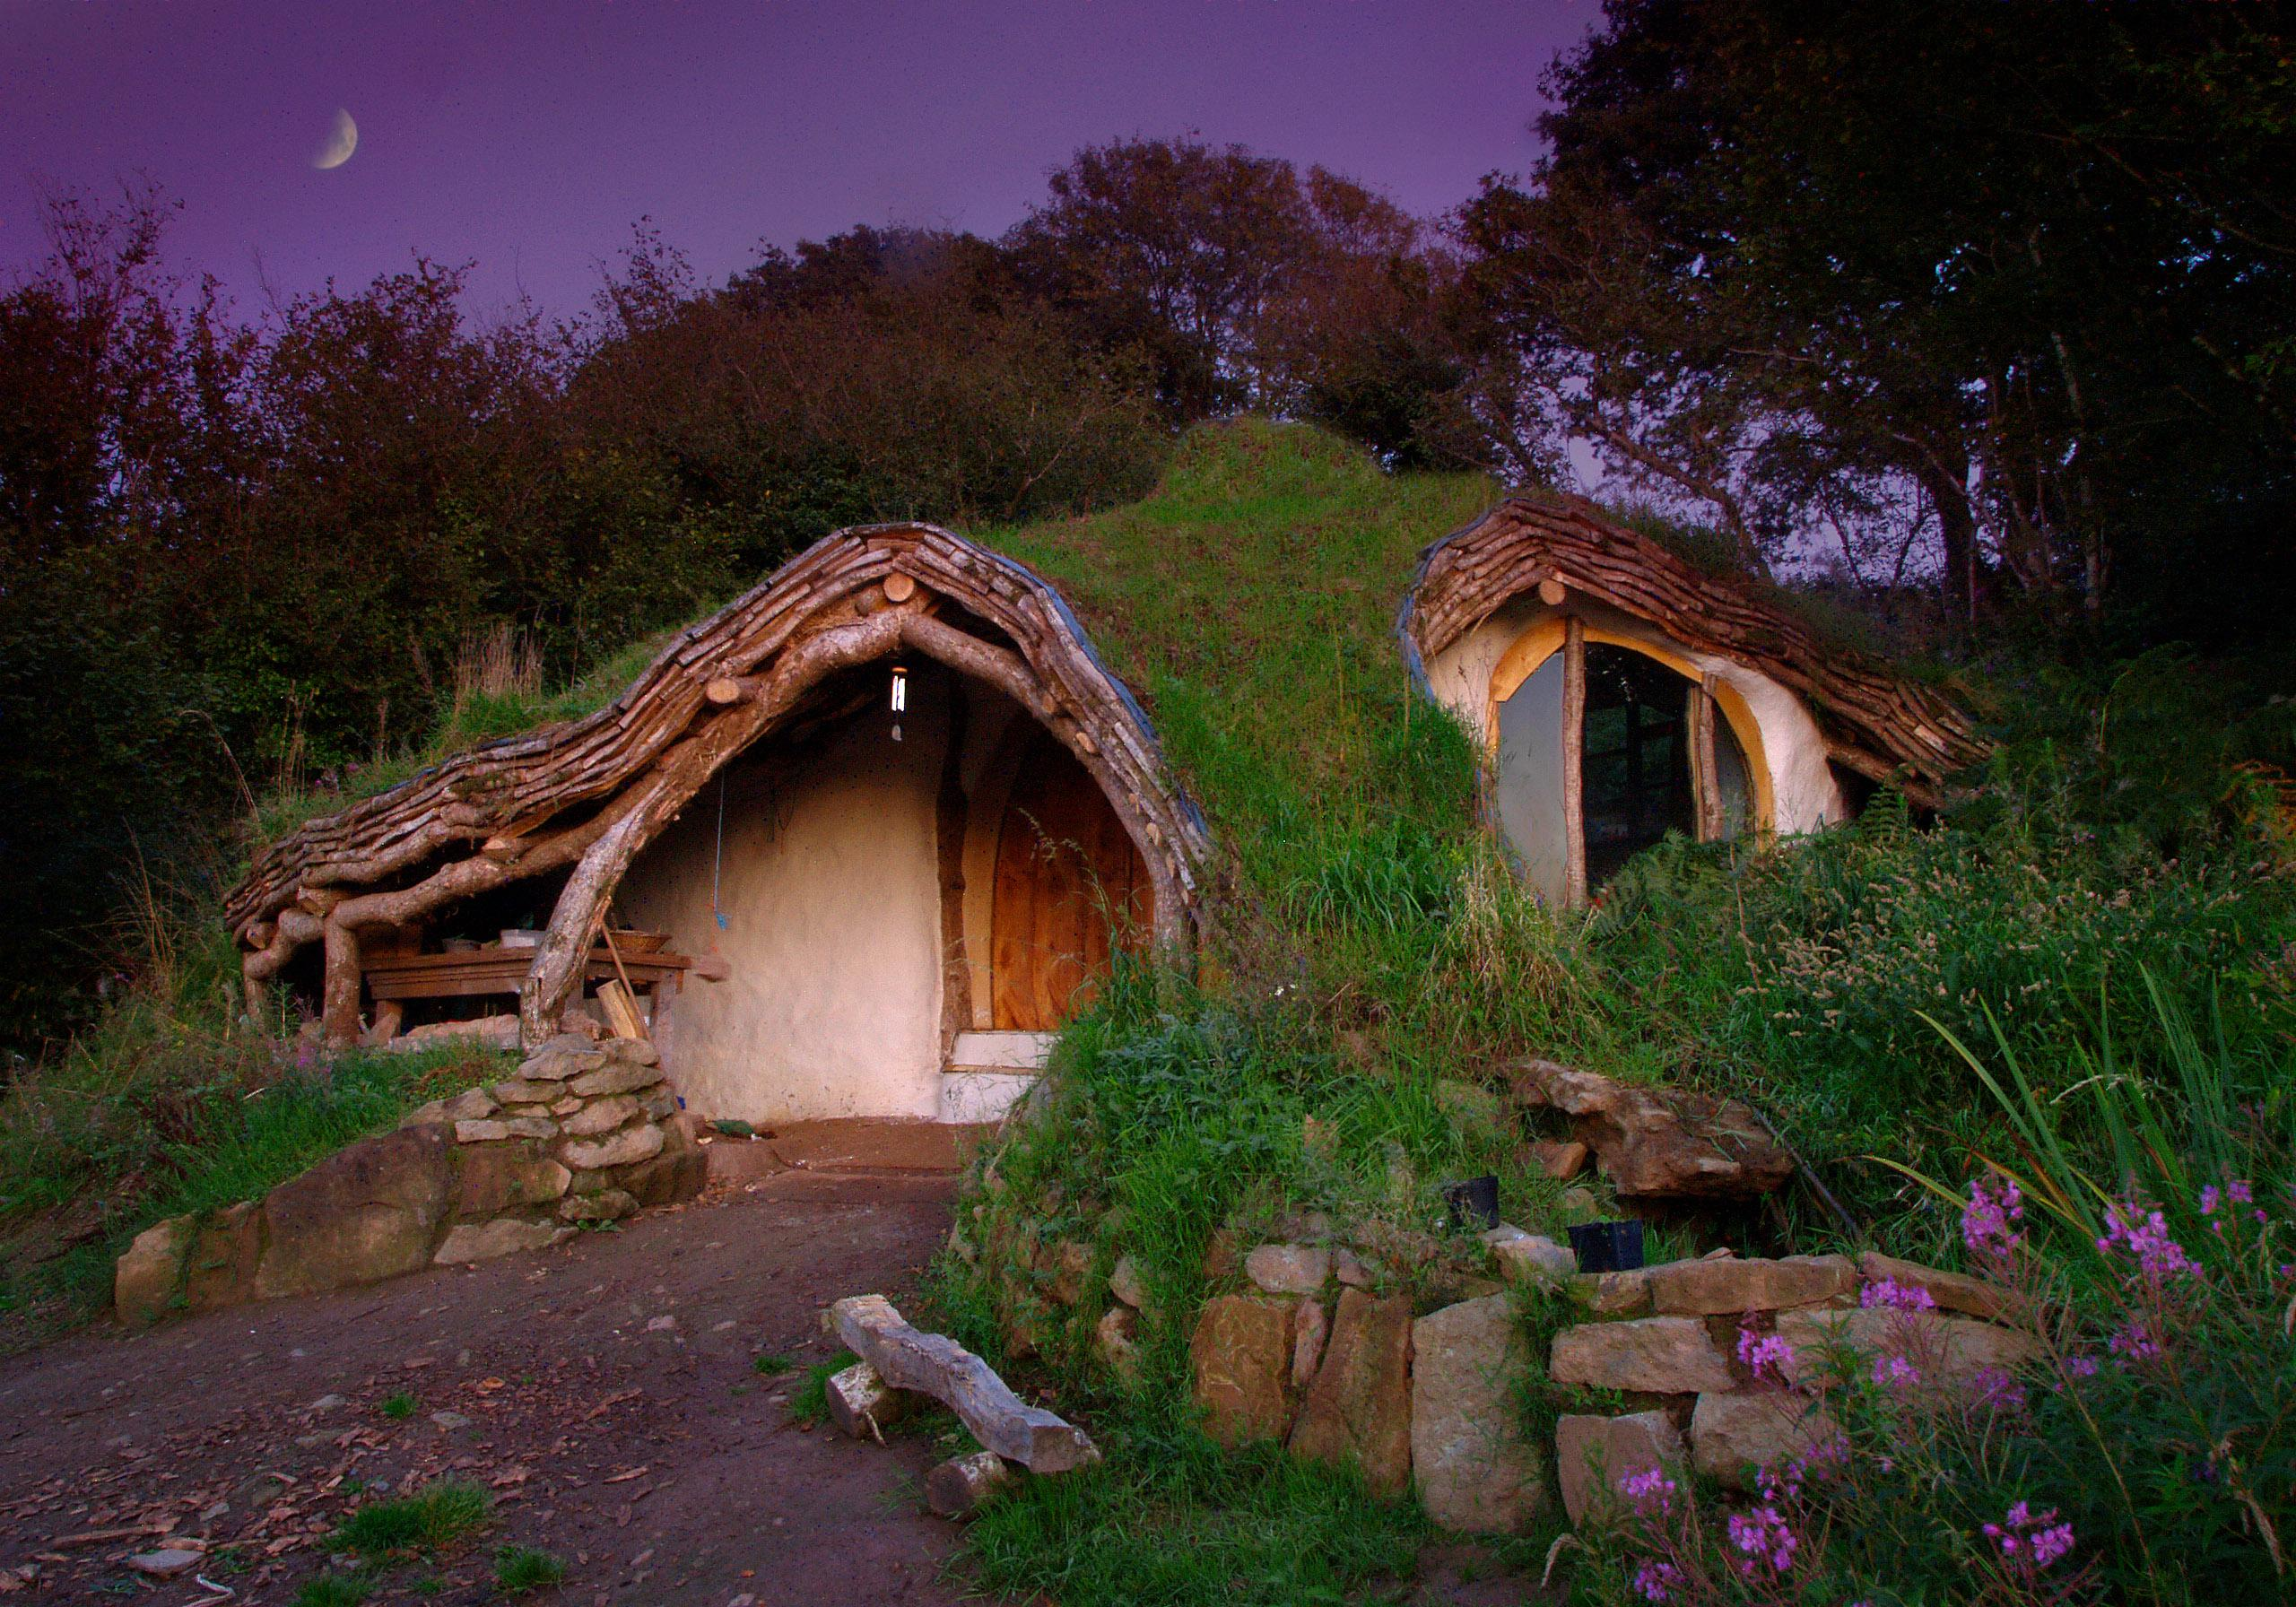 The Hobbit House Simon Dale